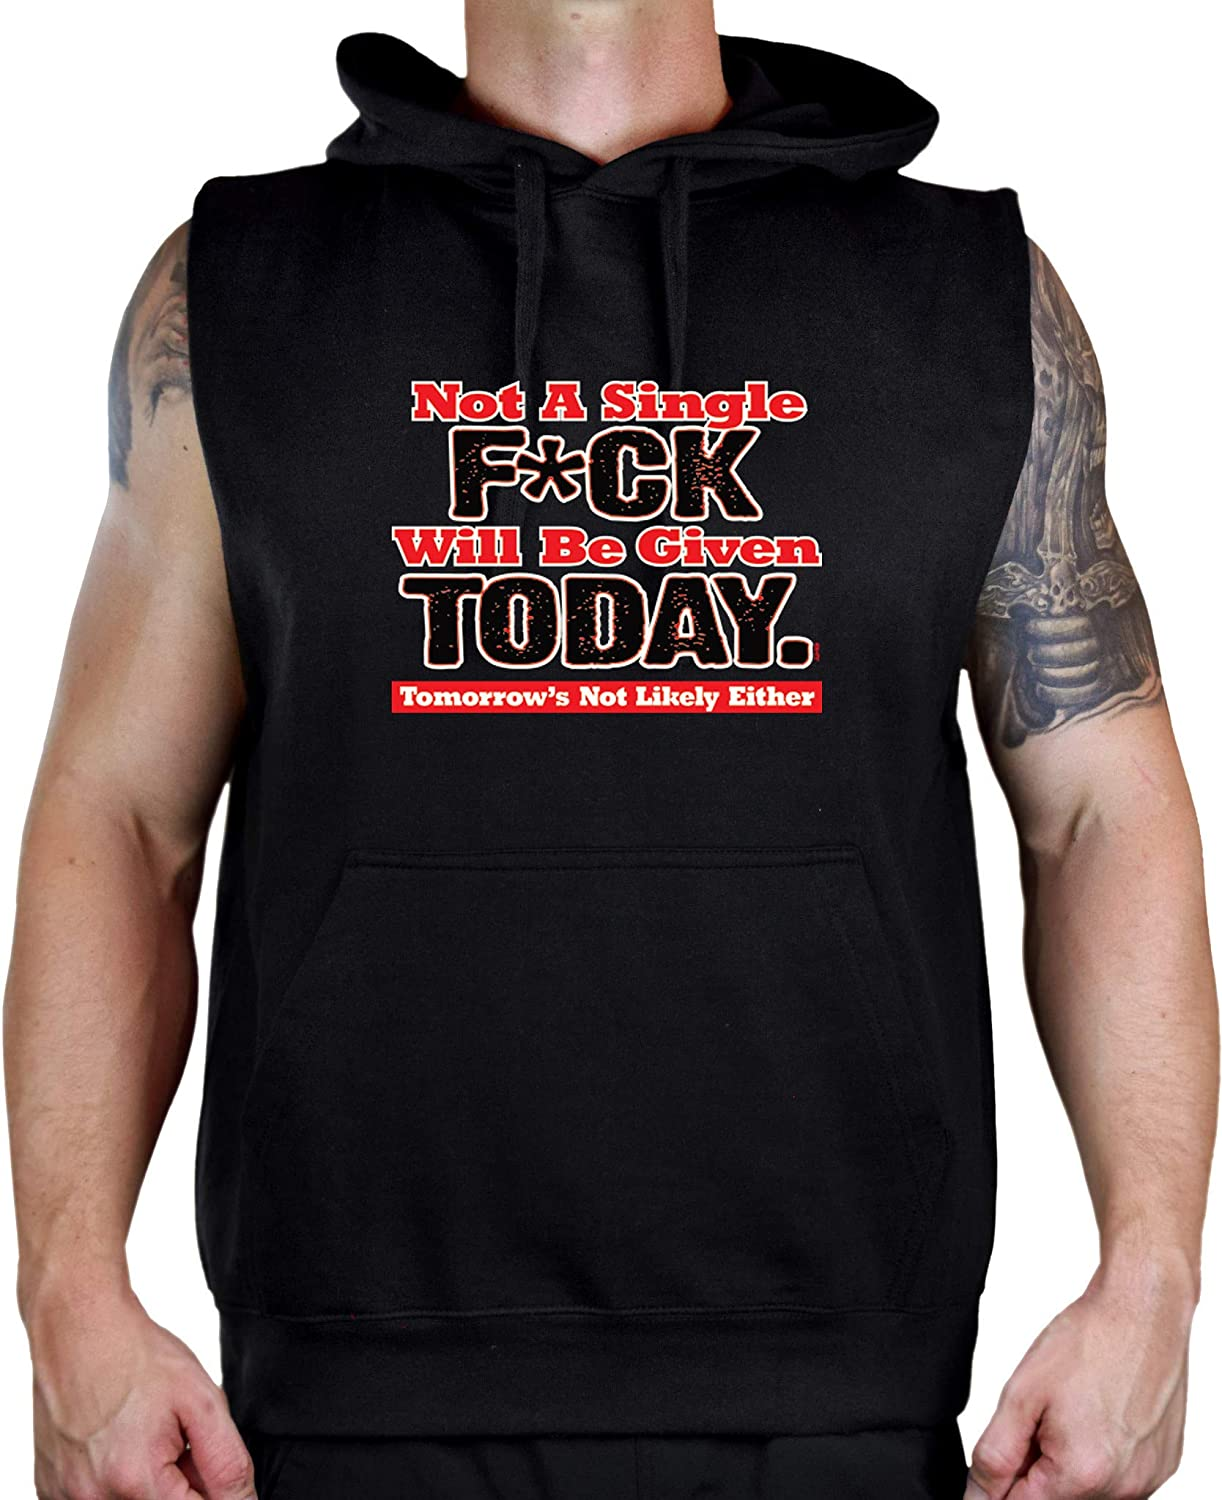 Mens Not A Single FCK Given Today Black Sleeveless Vest Hoodie